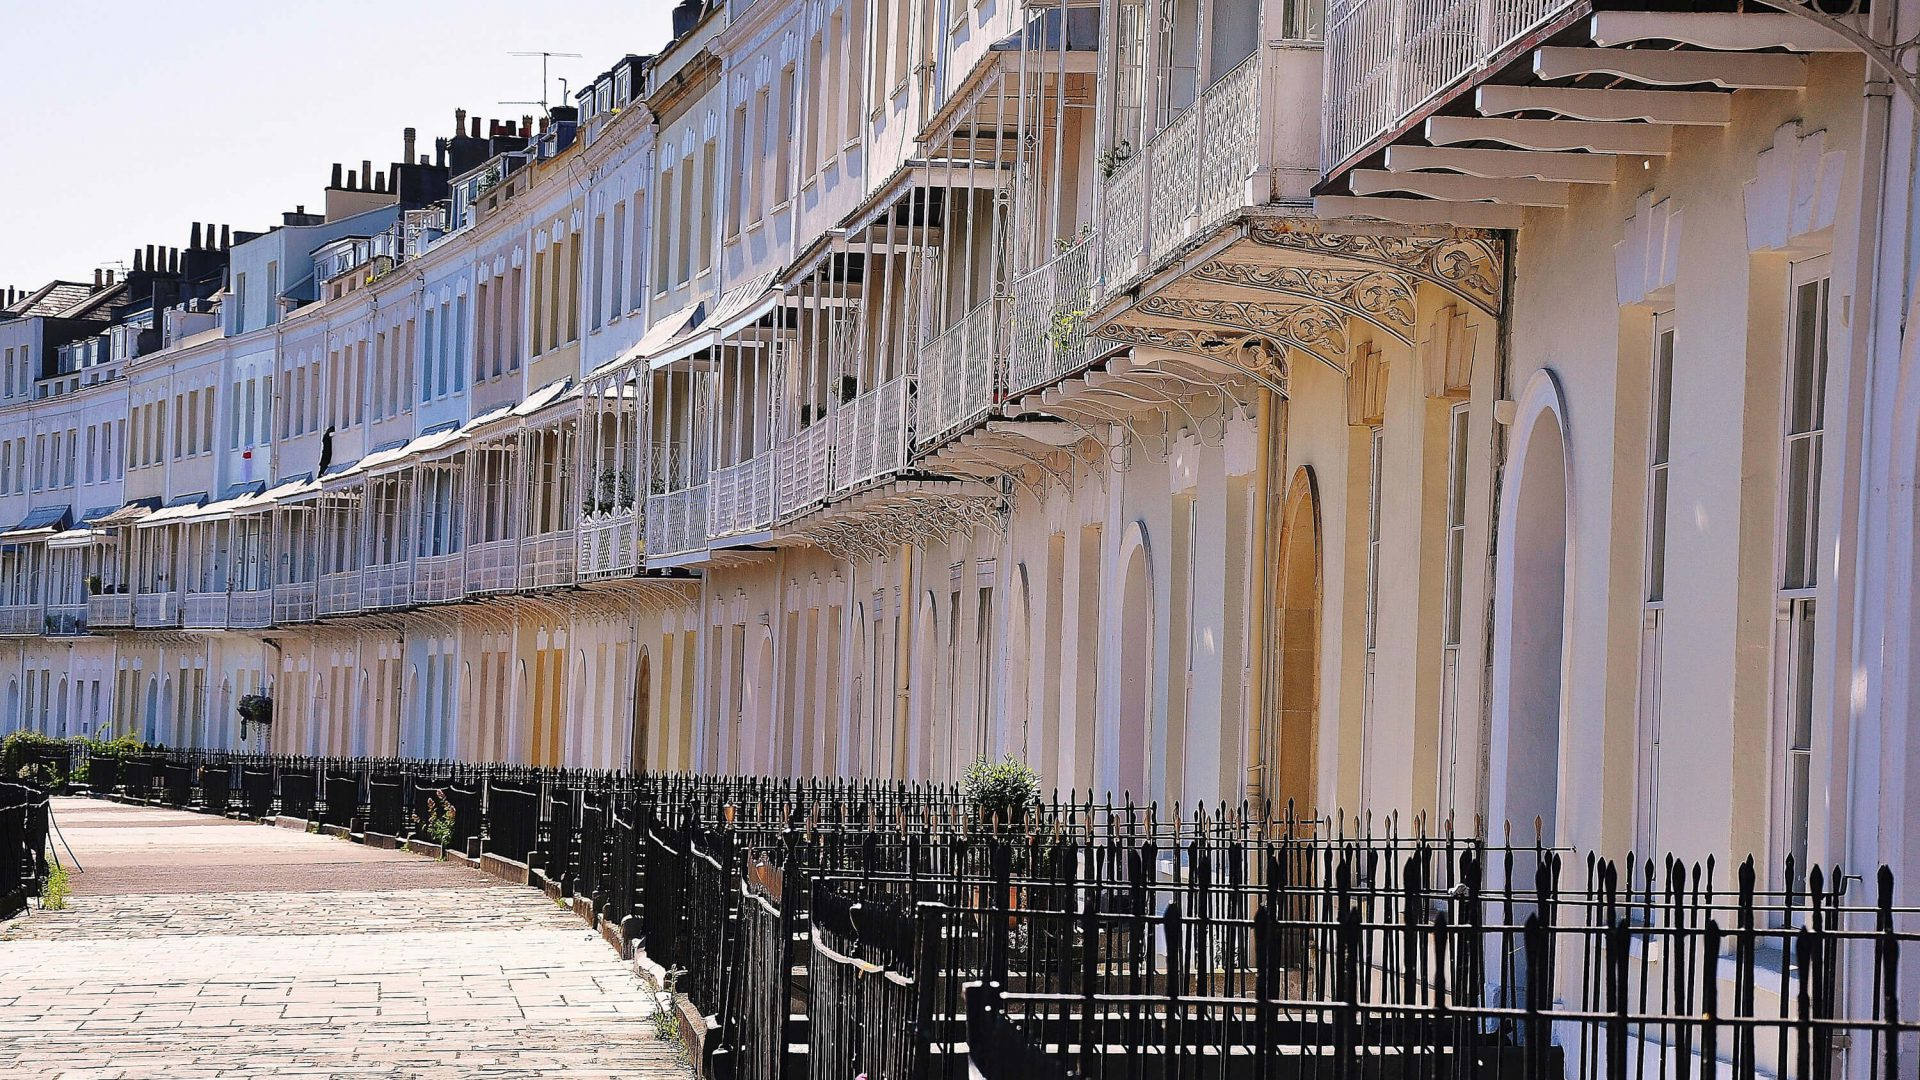 Row of houses in Clifton, Bristol